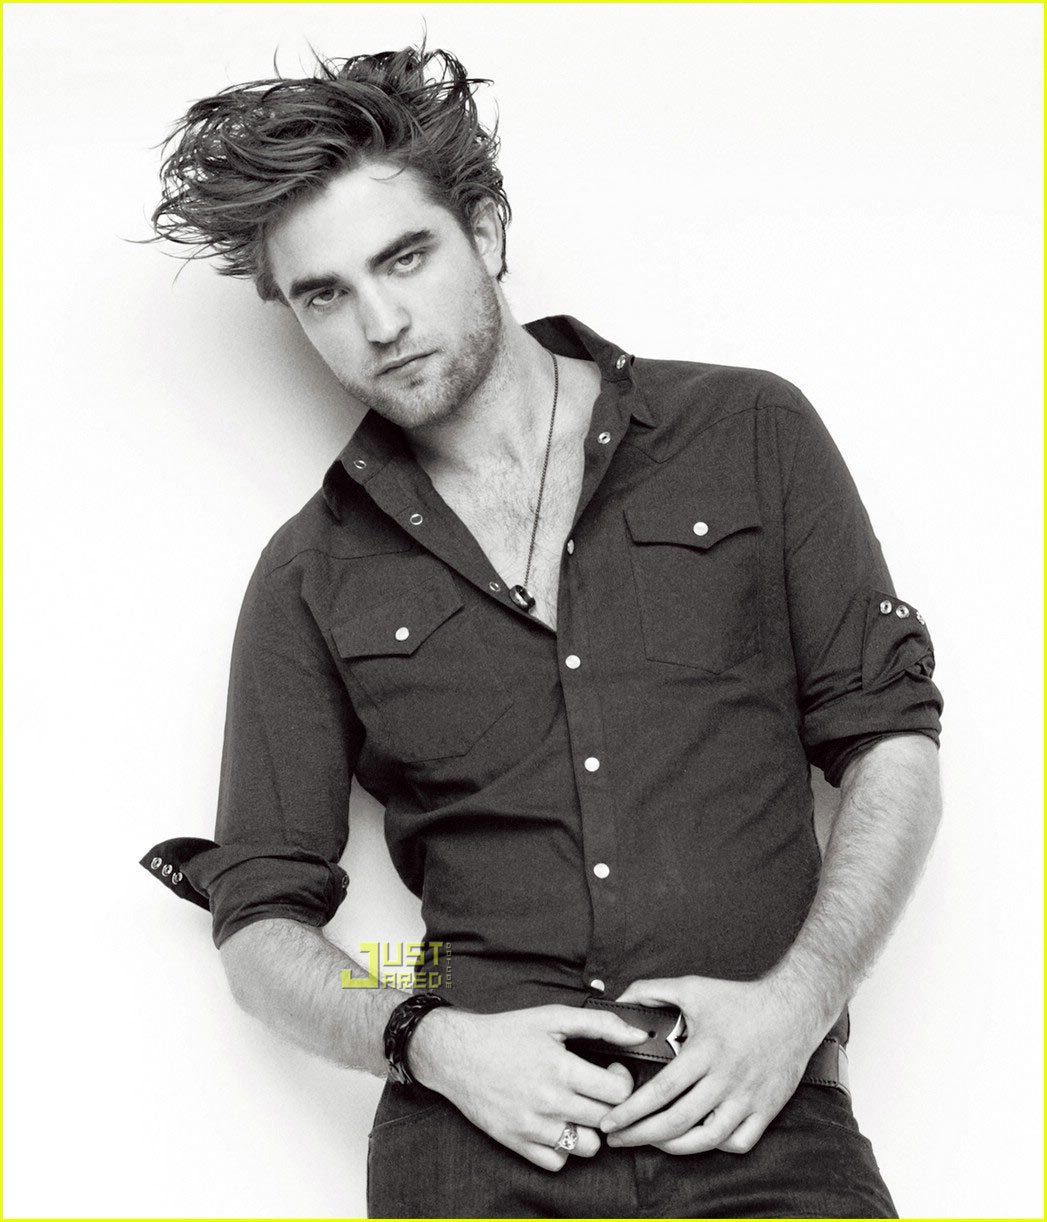 http://images2.fanpop.com/images/photos/4800000/Robert-Pattinson-GQ-robert-pattinson-4822402-1047-1222.jpg